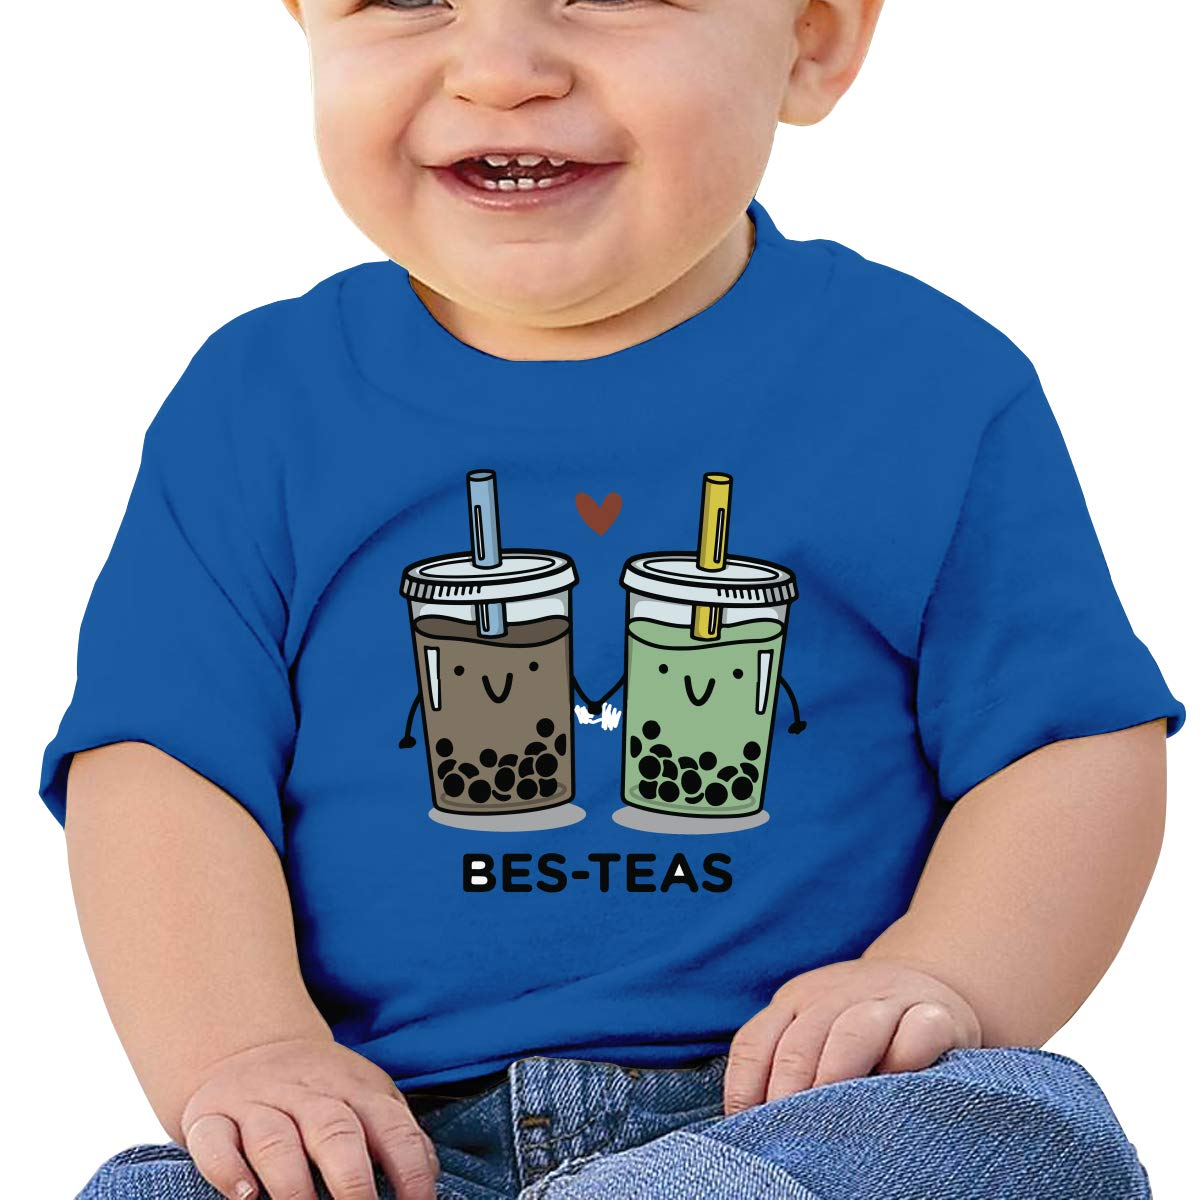 XHX403 BES-TEAS Bubble Tea Infant Kids T Shirt Cotton Tee Toddler Baby 6-18M